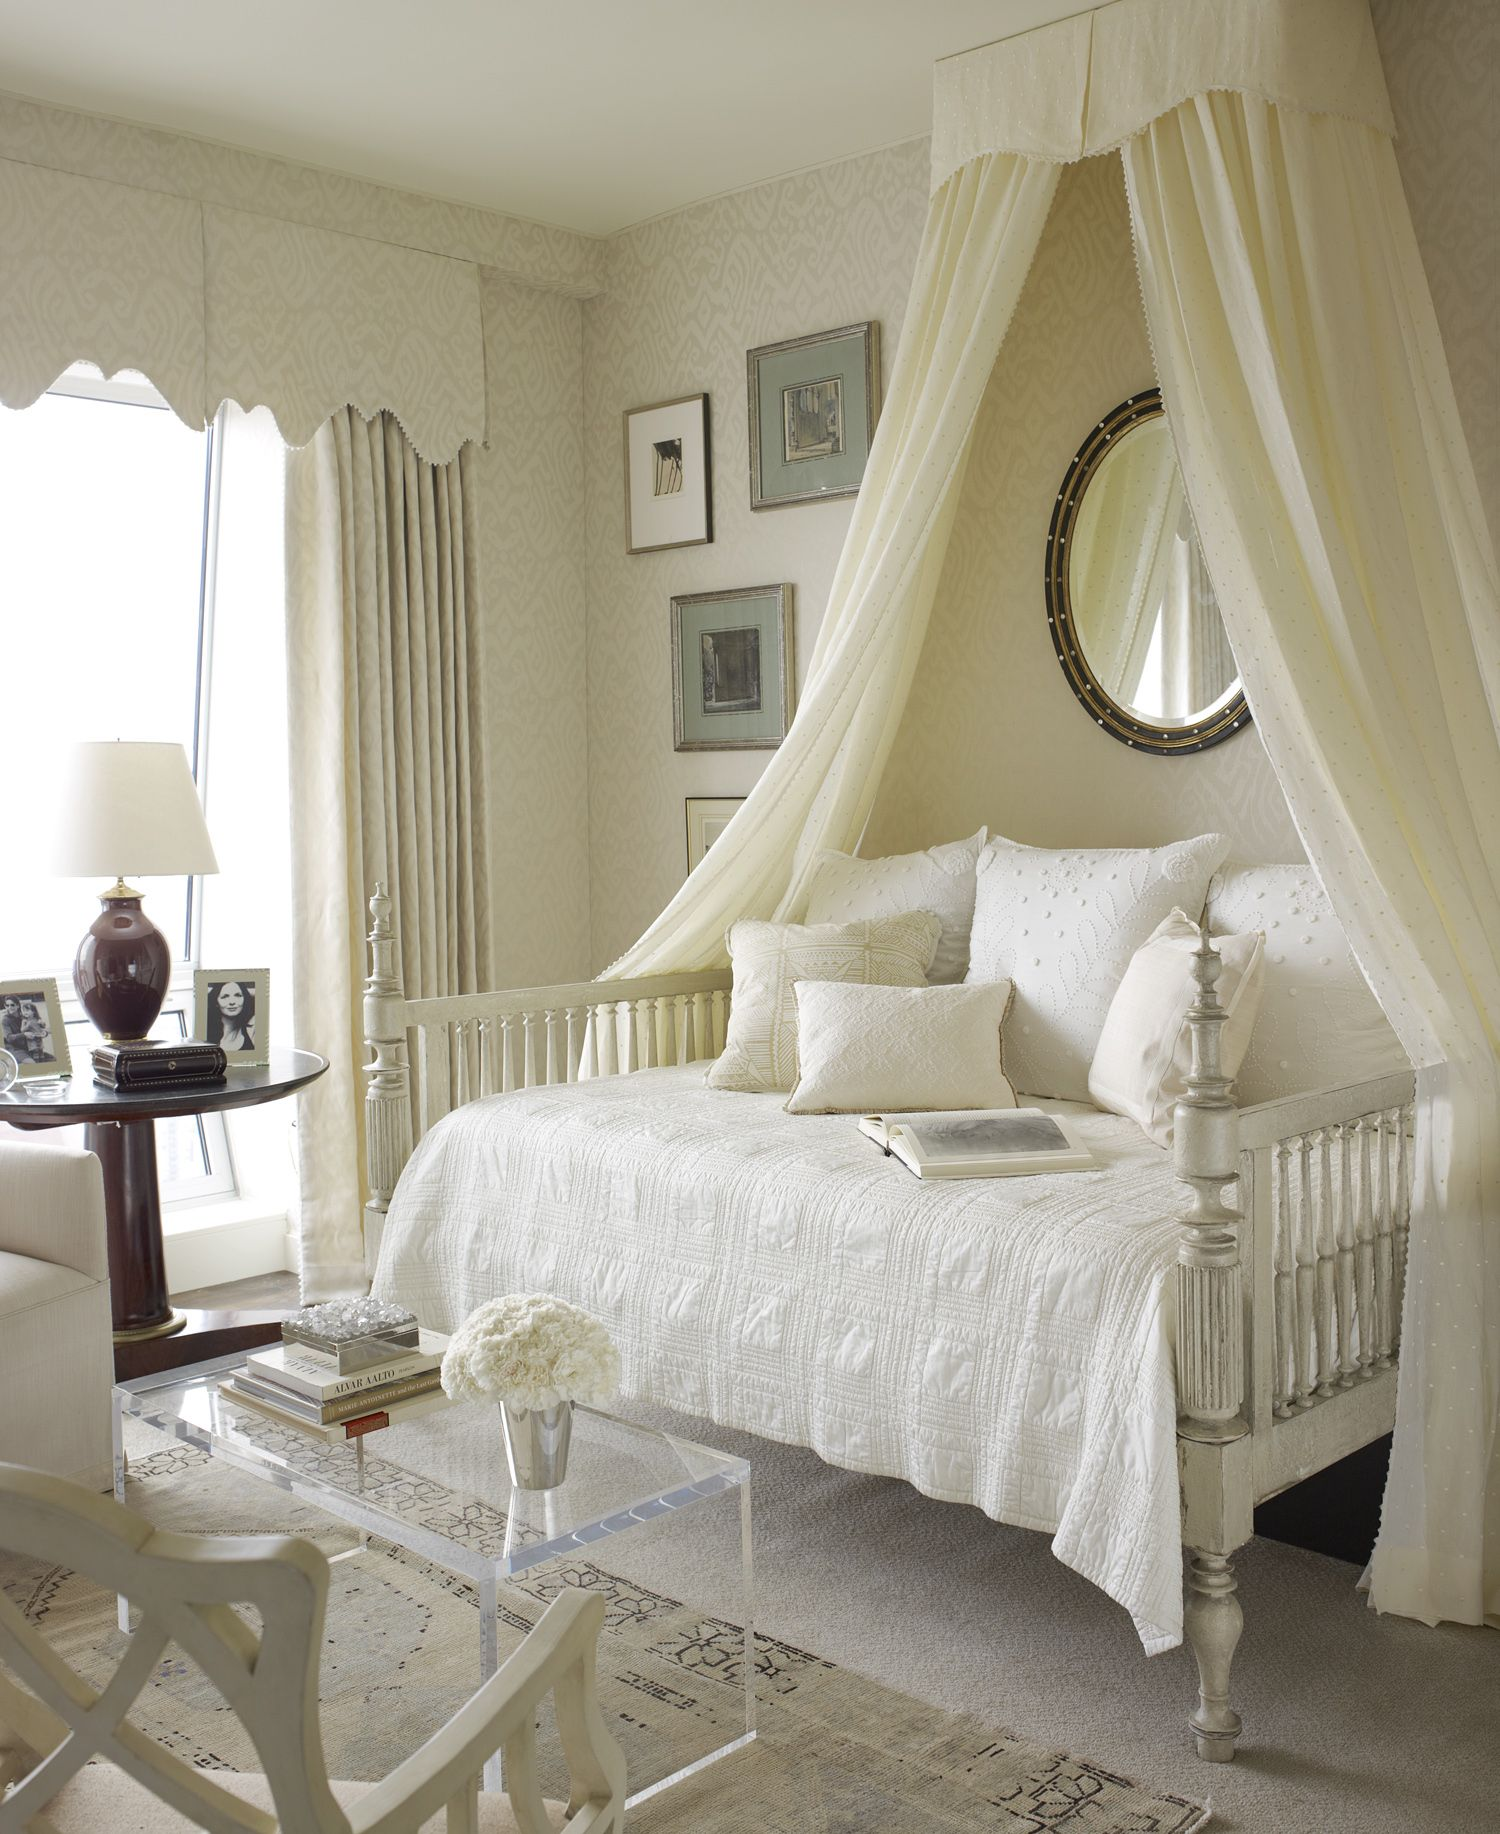 Daybed ideas bedroom - Canopy Bed Ideas Posts Modern Decorating With A Canopy Bed Canopies For Girls Bed